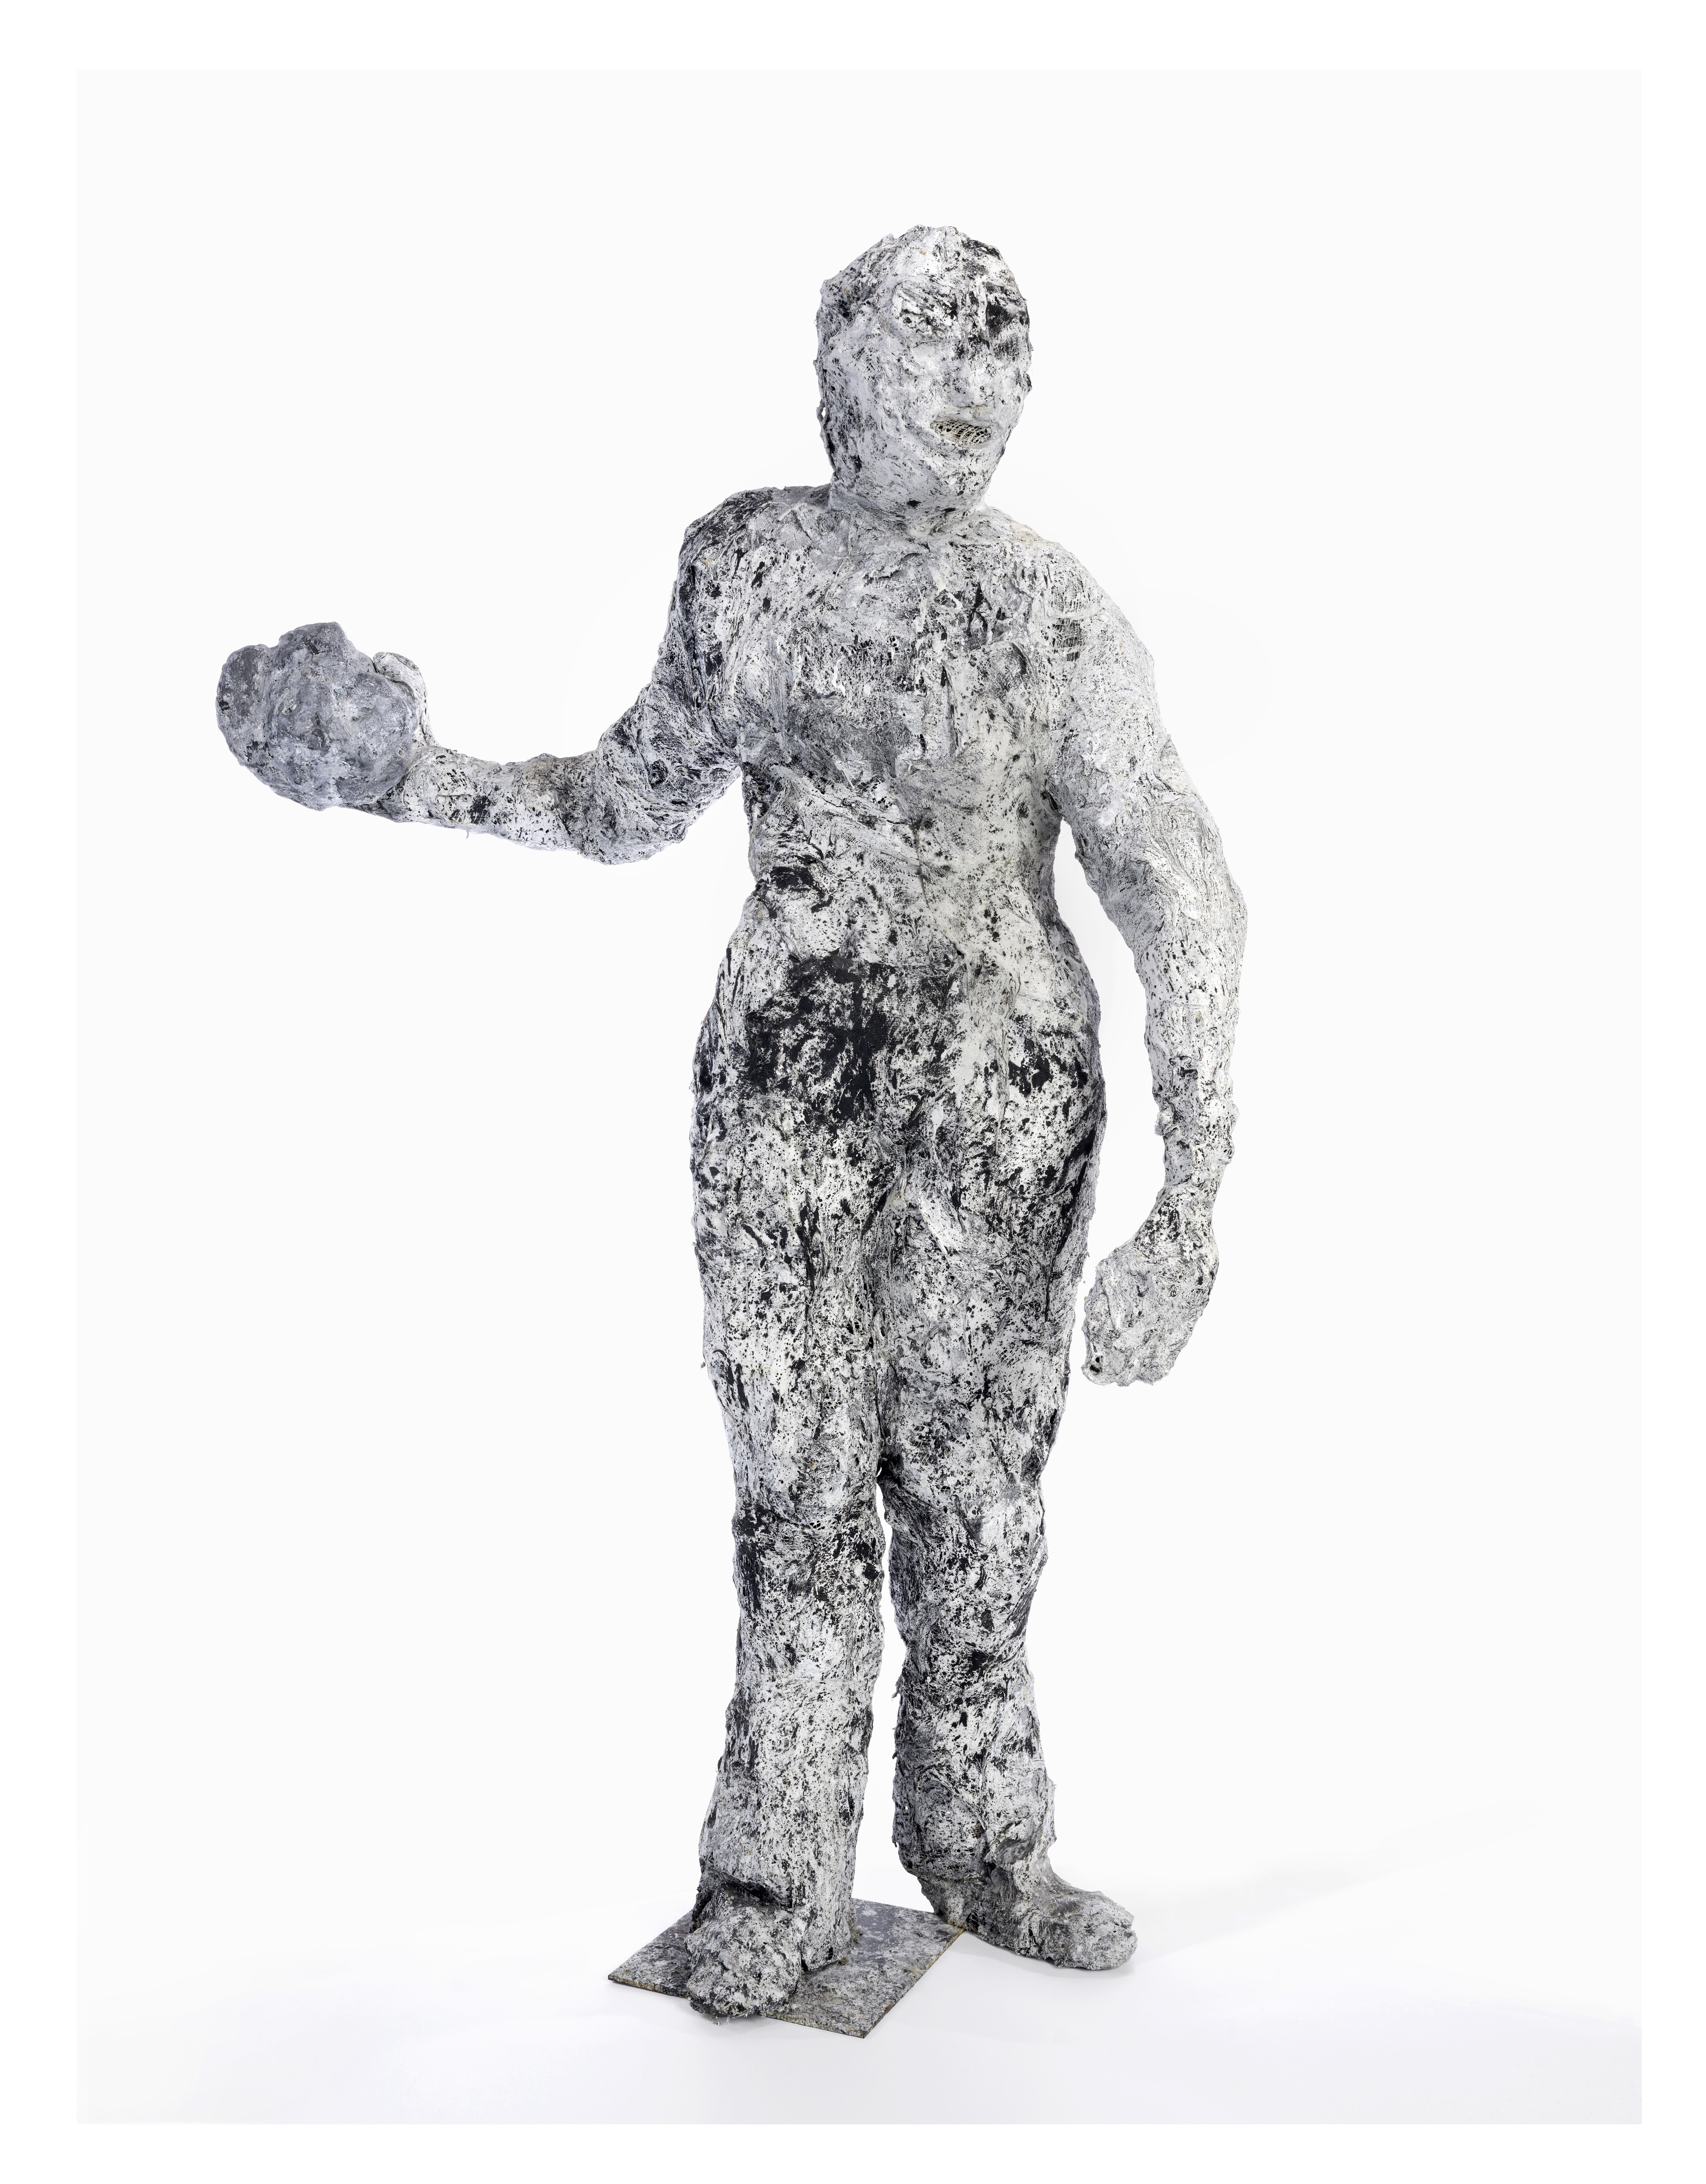 Cara Perlman,<i> Rock Thrower</i>, 1991 Plaster, wire, gauze, enamel paint 61 x 43 x 22 inches LeWitt Collection, Chester, Connecticut Photo: Cultural Preservation Technologies, Inc.